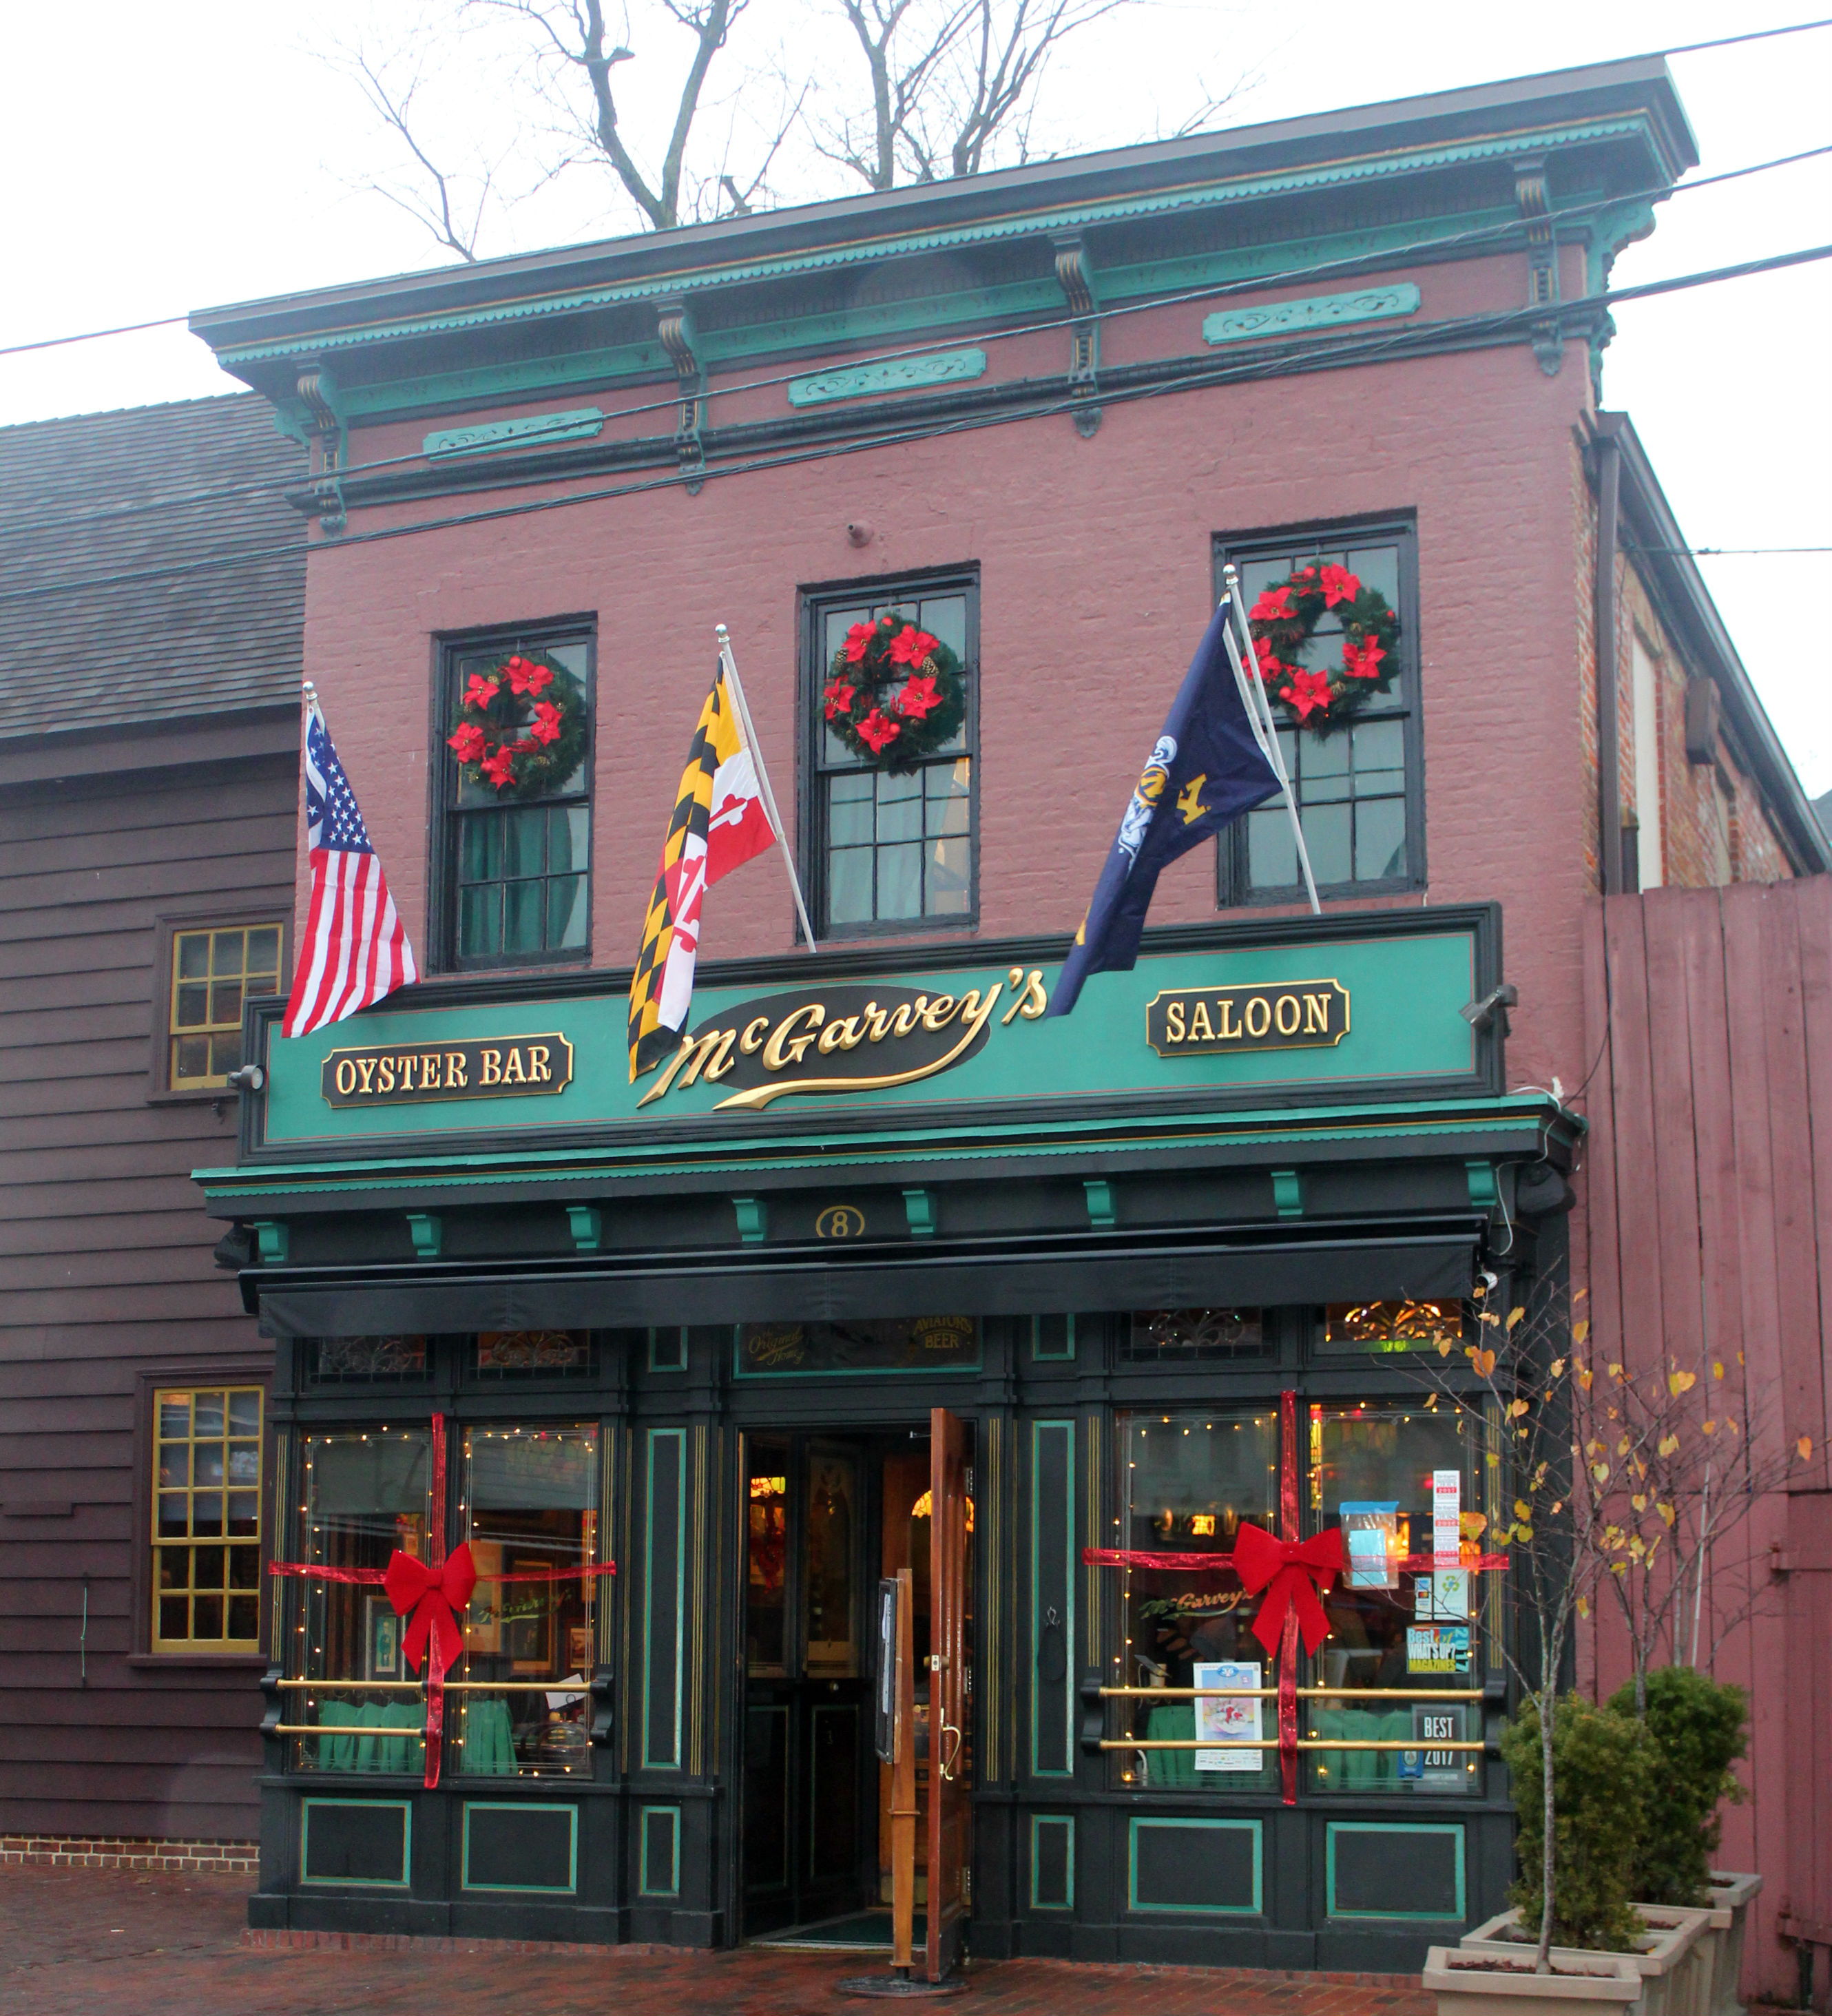 Most restaurants and store fronts have wreaths, lights, garland and other decor.{&nbsp;}(Image: Julie Gallagher)<p></p>